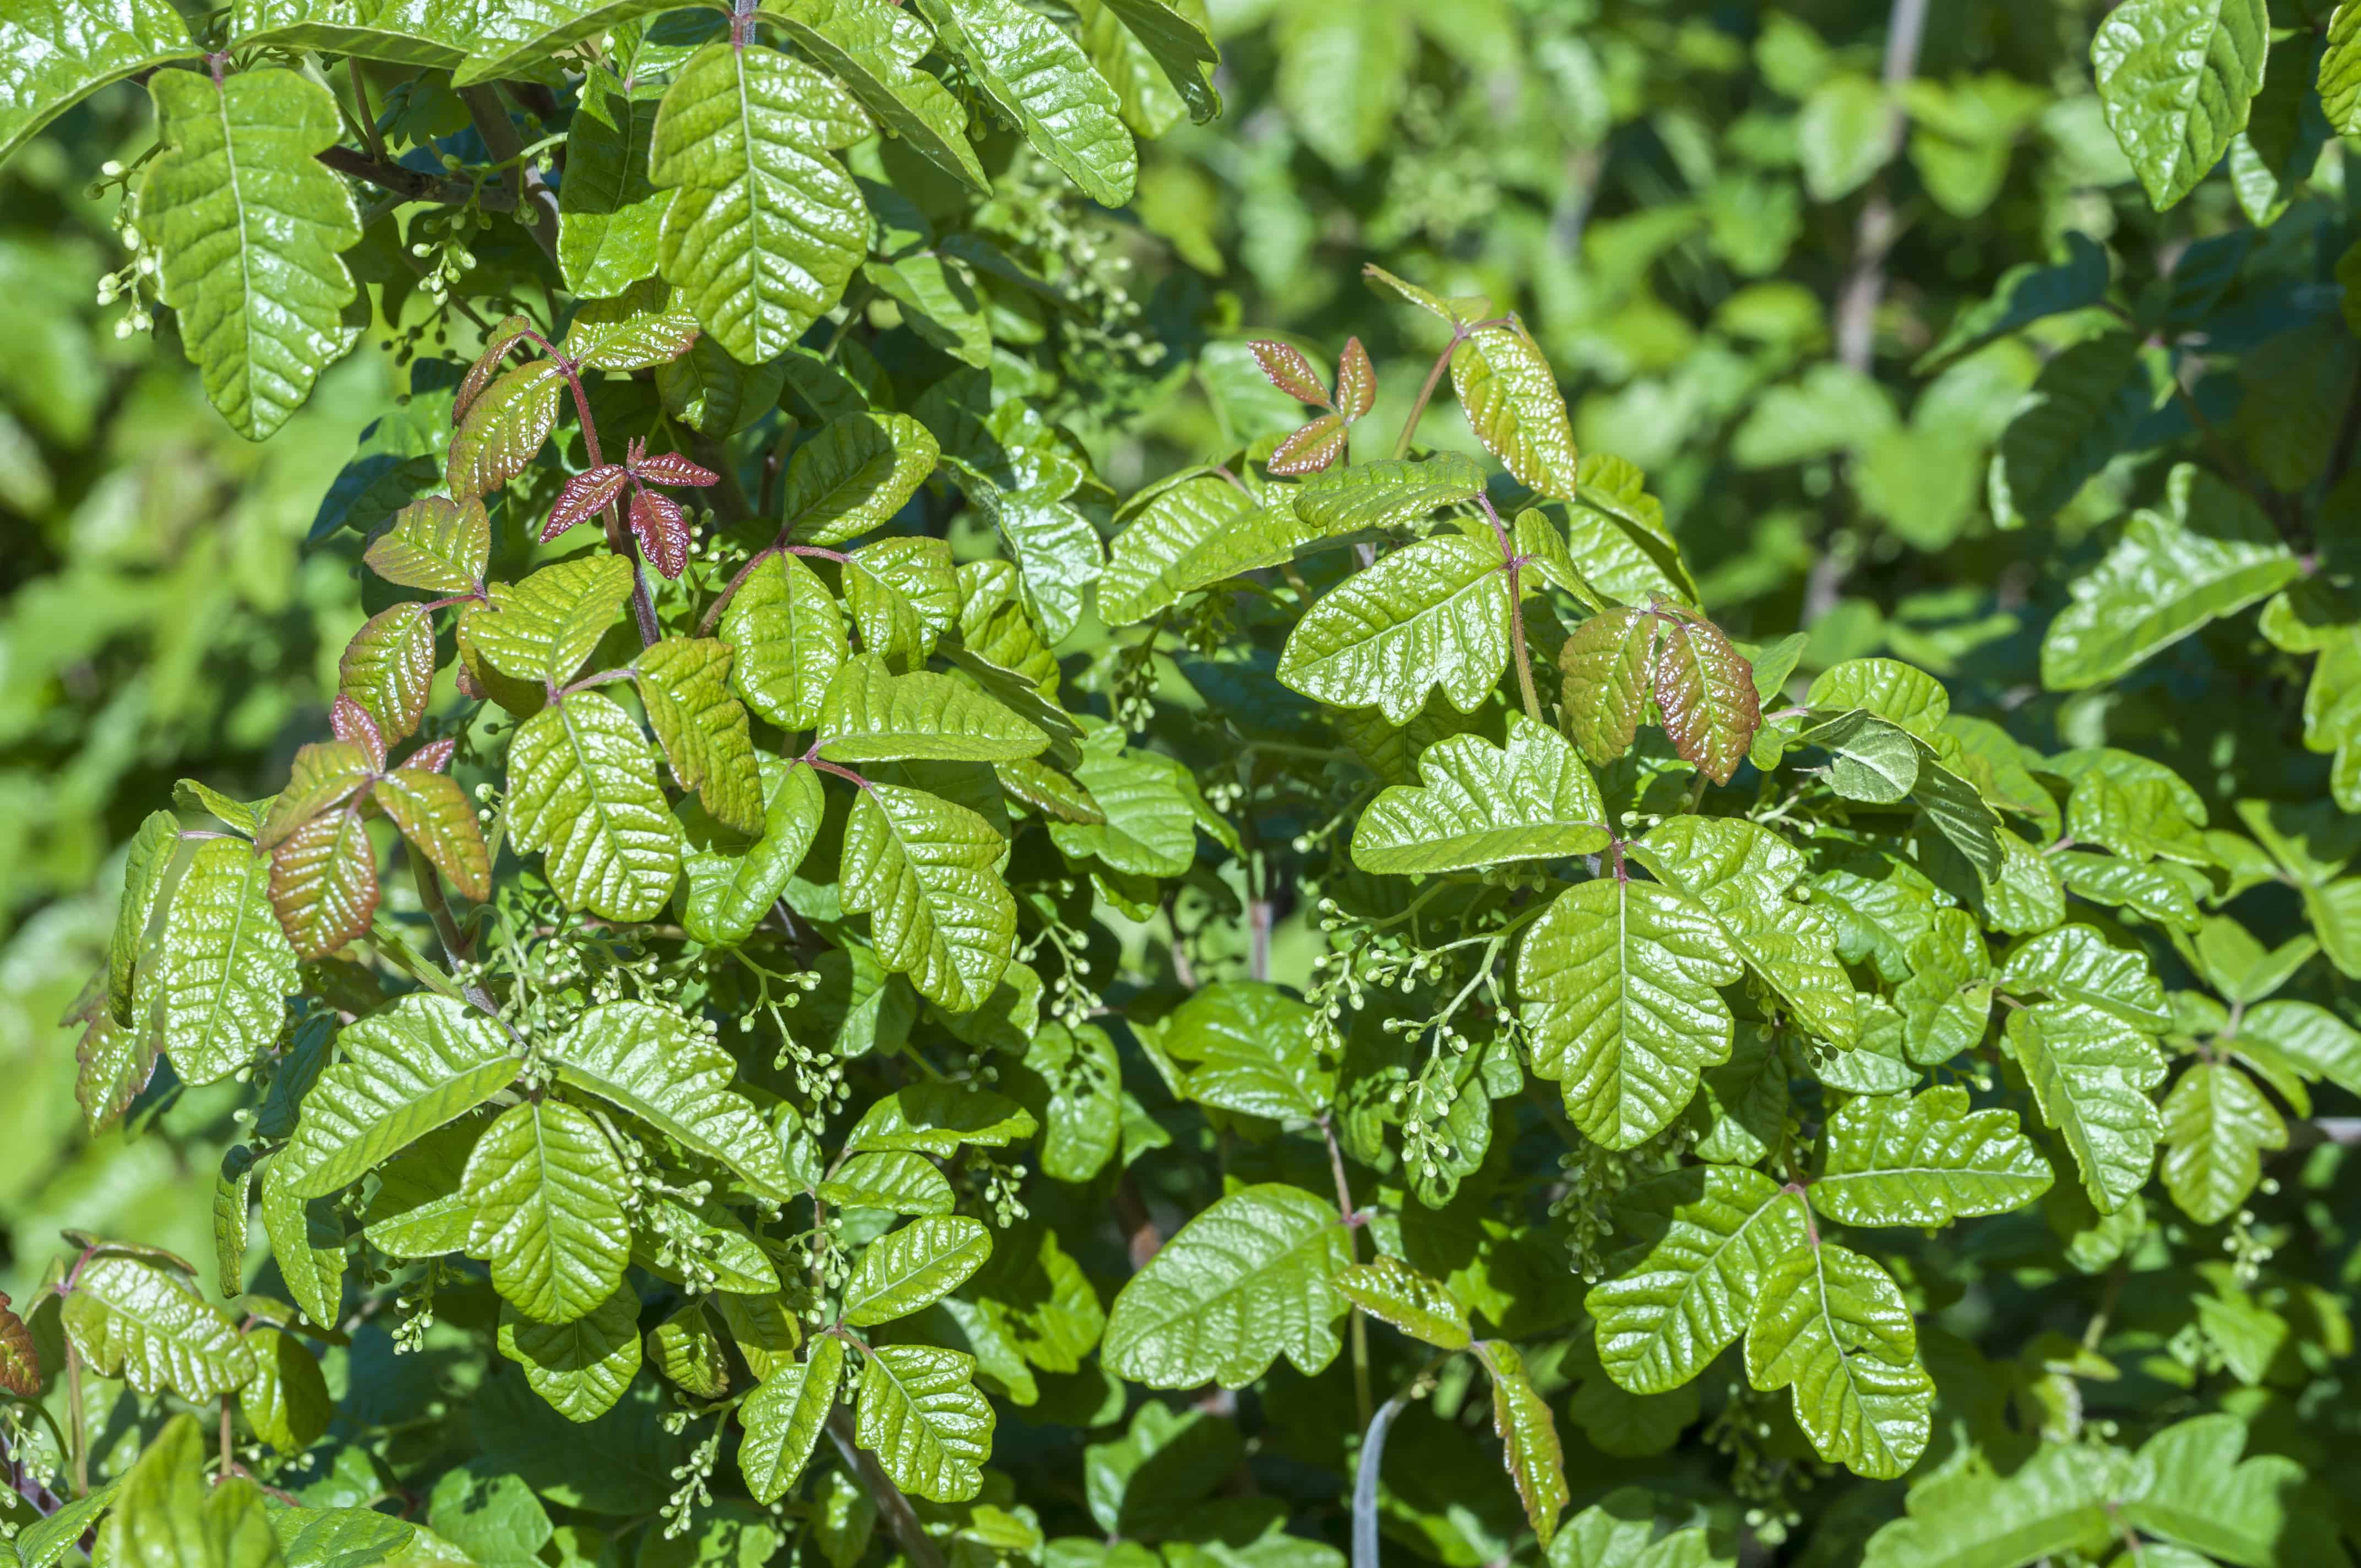 Beautiful green poison oak Toxicodendron diversilobum bush in natural environment